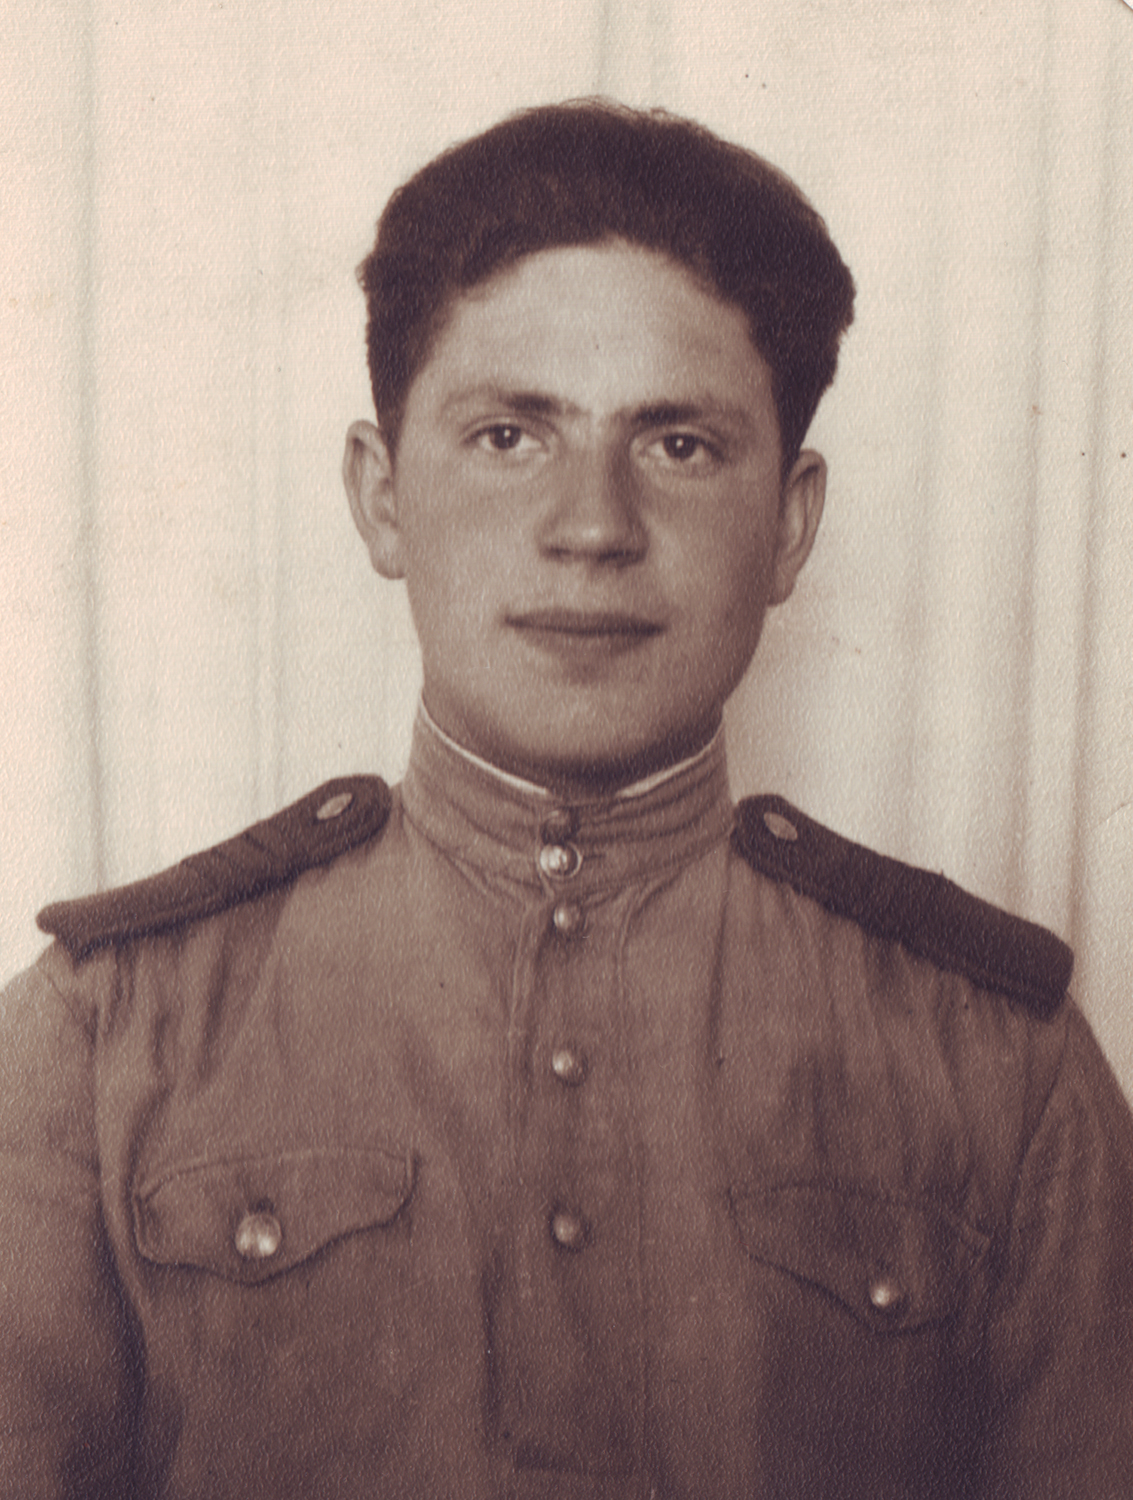 Vladimir in Gabert, Germany, where he celebrated Victory Day, 1945